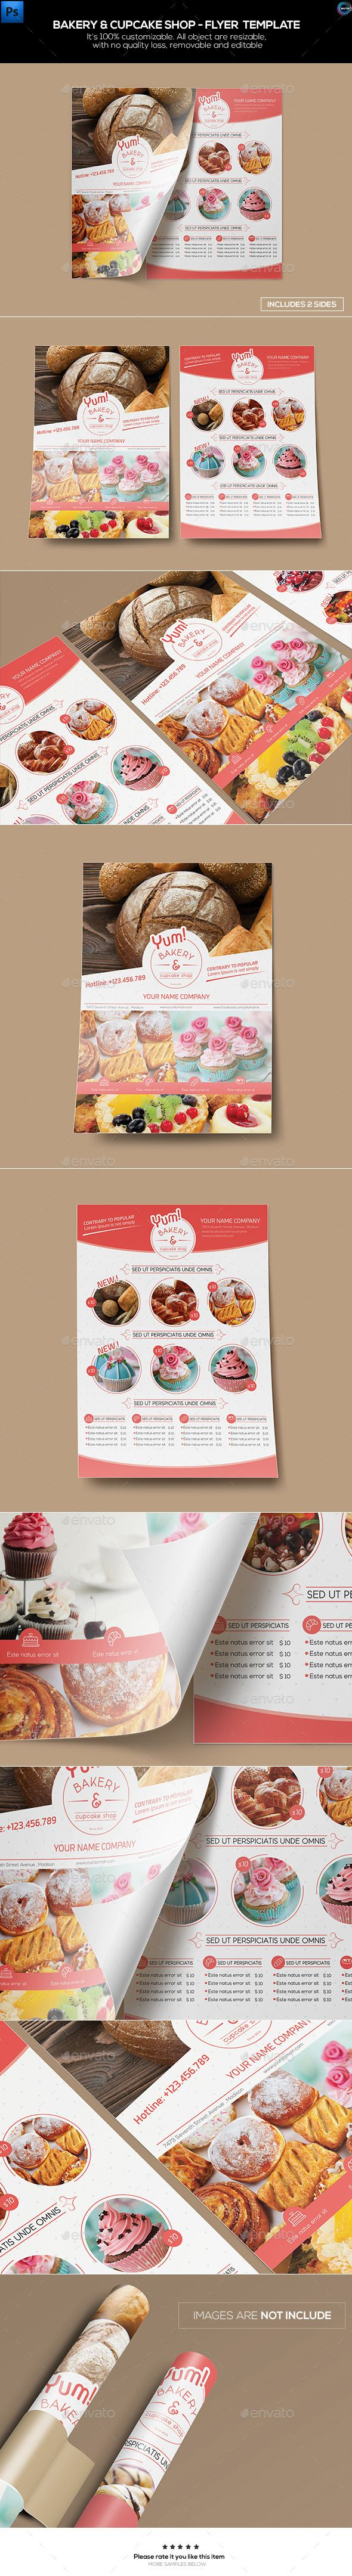 Bakery & Cupcake Shop - Flyer Tempalte #design Download: http://graphicriver.net/item/bakery-cupcake-shop-flyer-template/12485922?ref=ksioks